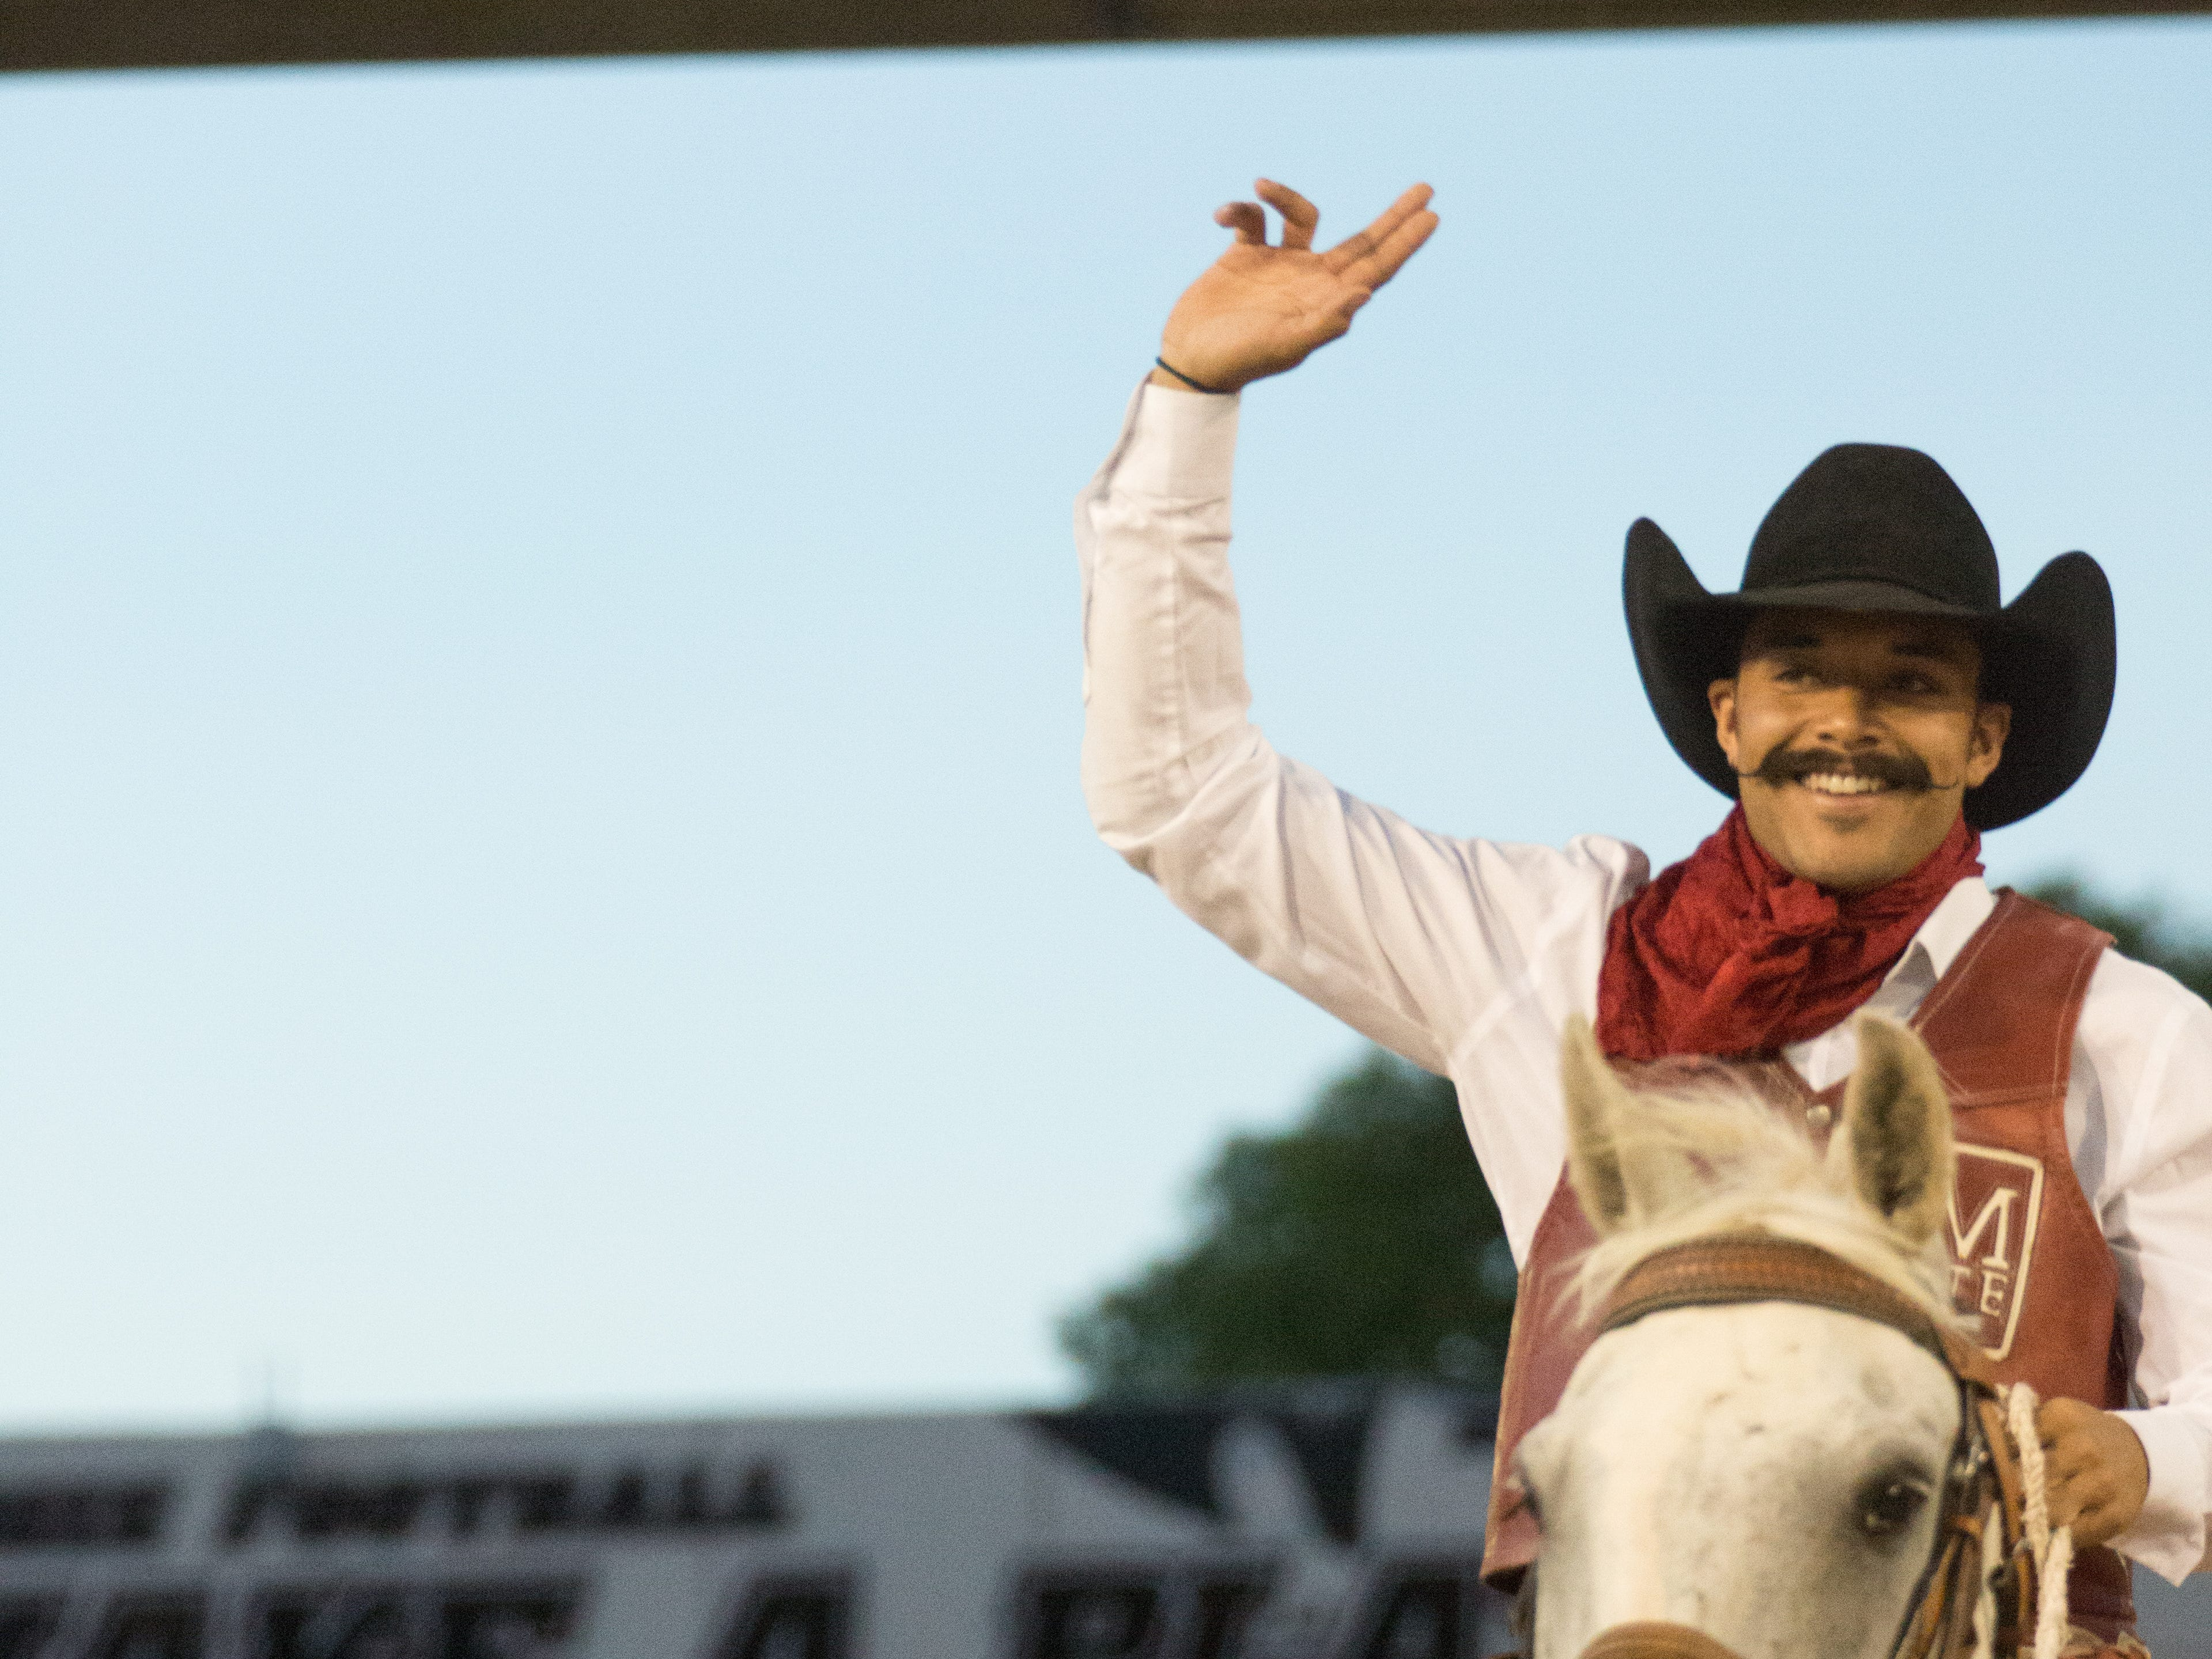 Pistol pete throws his guns up on Saturday, August 25, 2018, during the NMSU/Wyoming game at the Aggie Memorial Stadium.